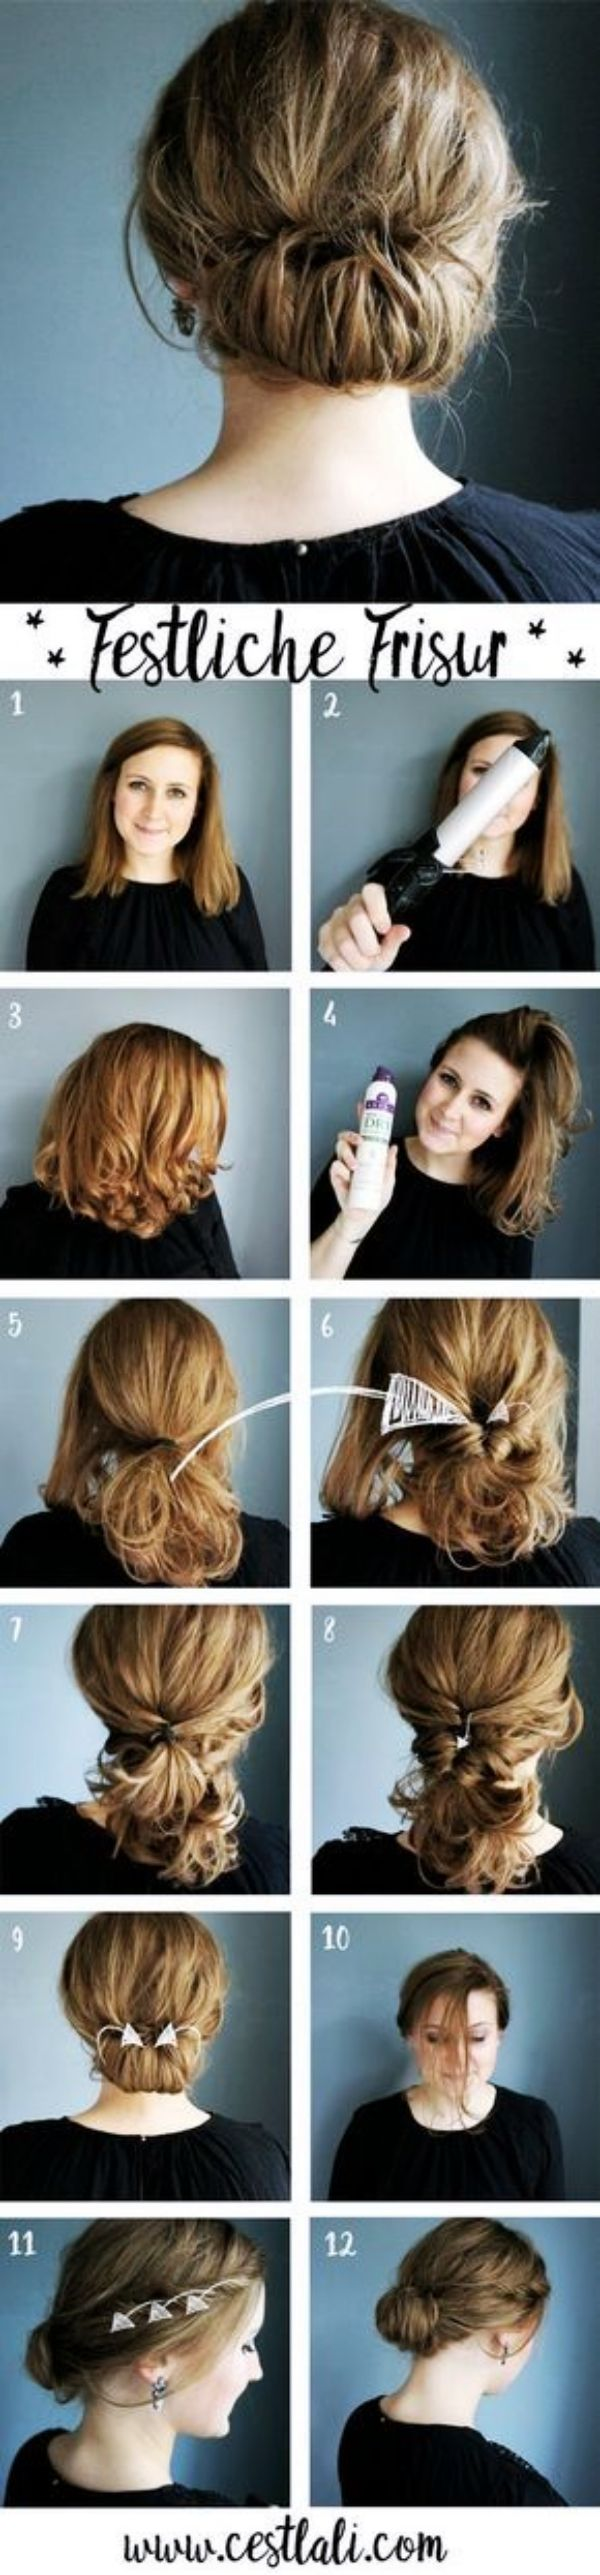 easy hairstyles no haircuts for women with short hair how to